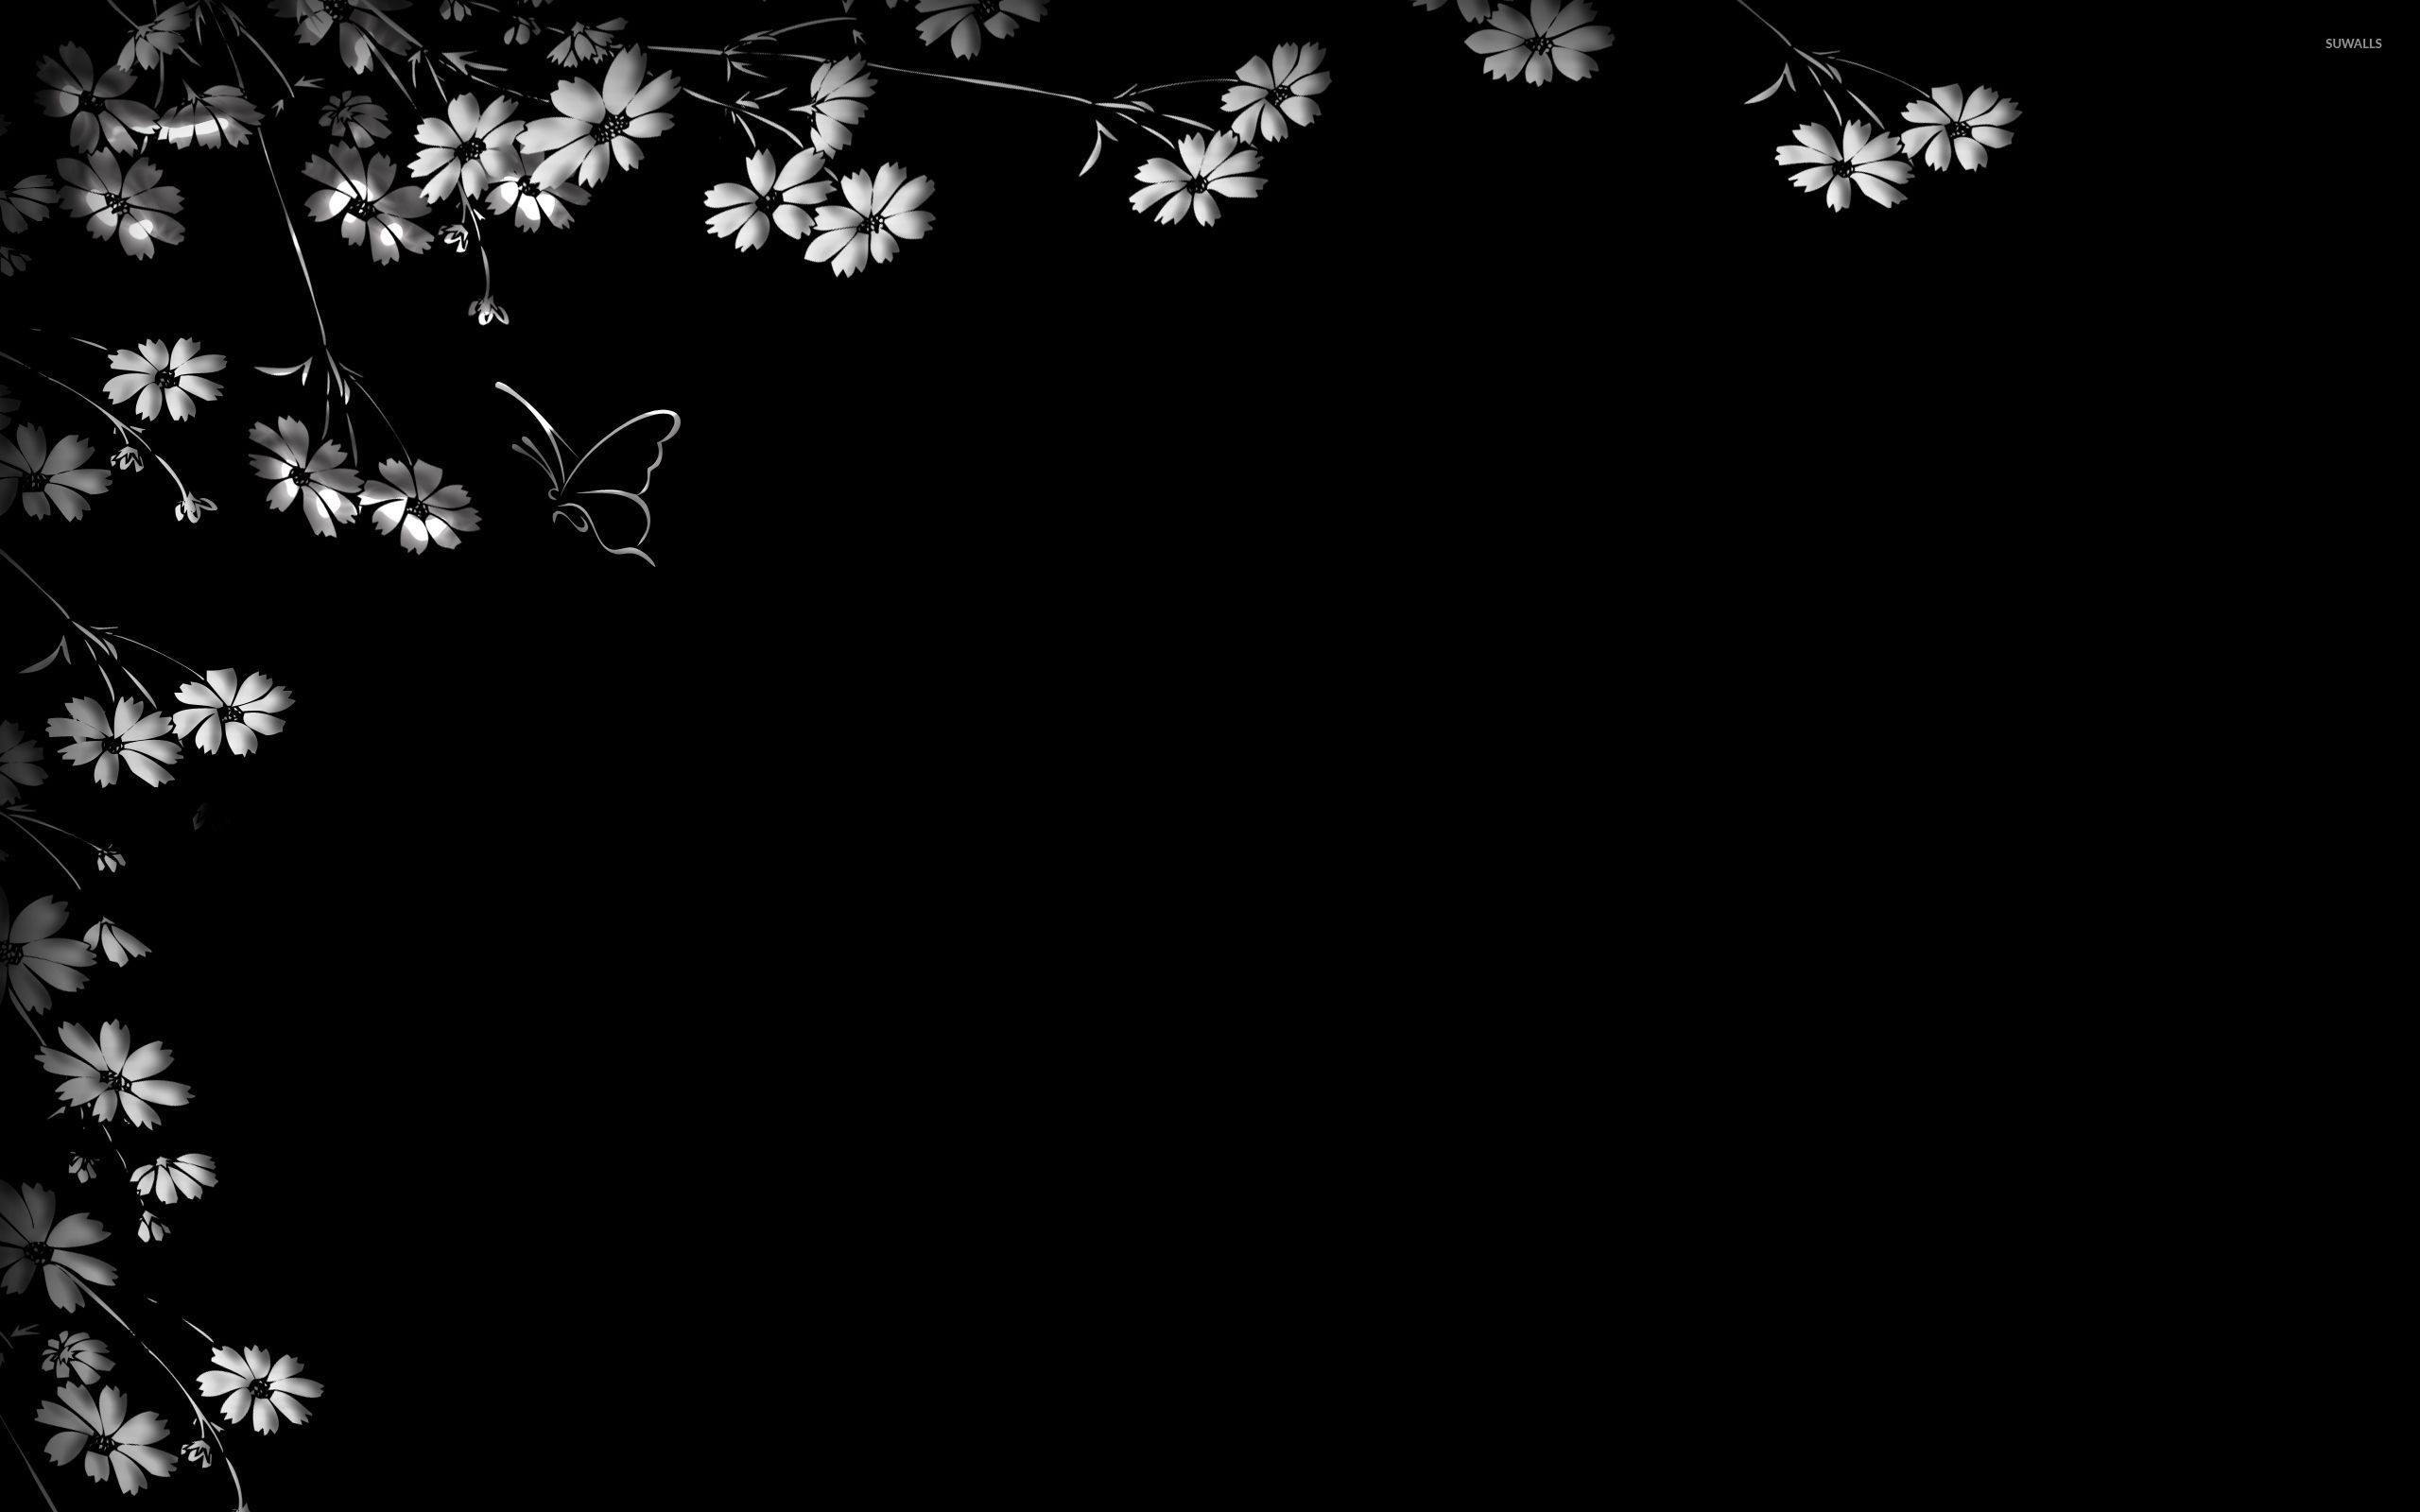 Flowers On The Black Wall Wallpaper Digital Art Wallpapers 54398